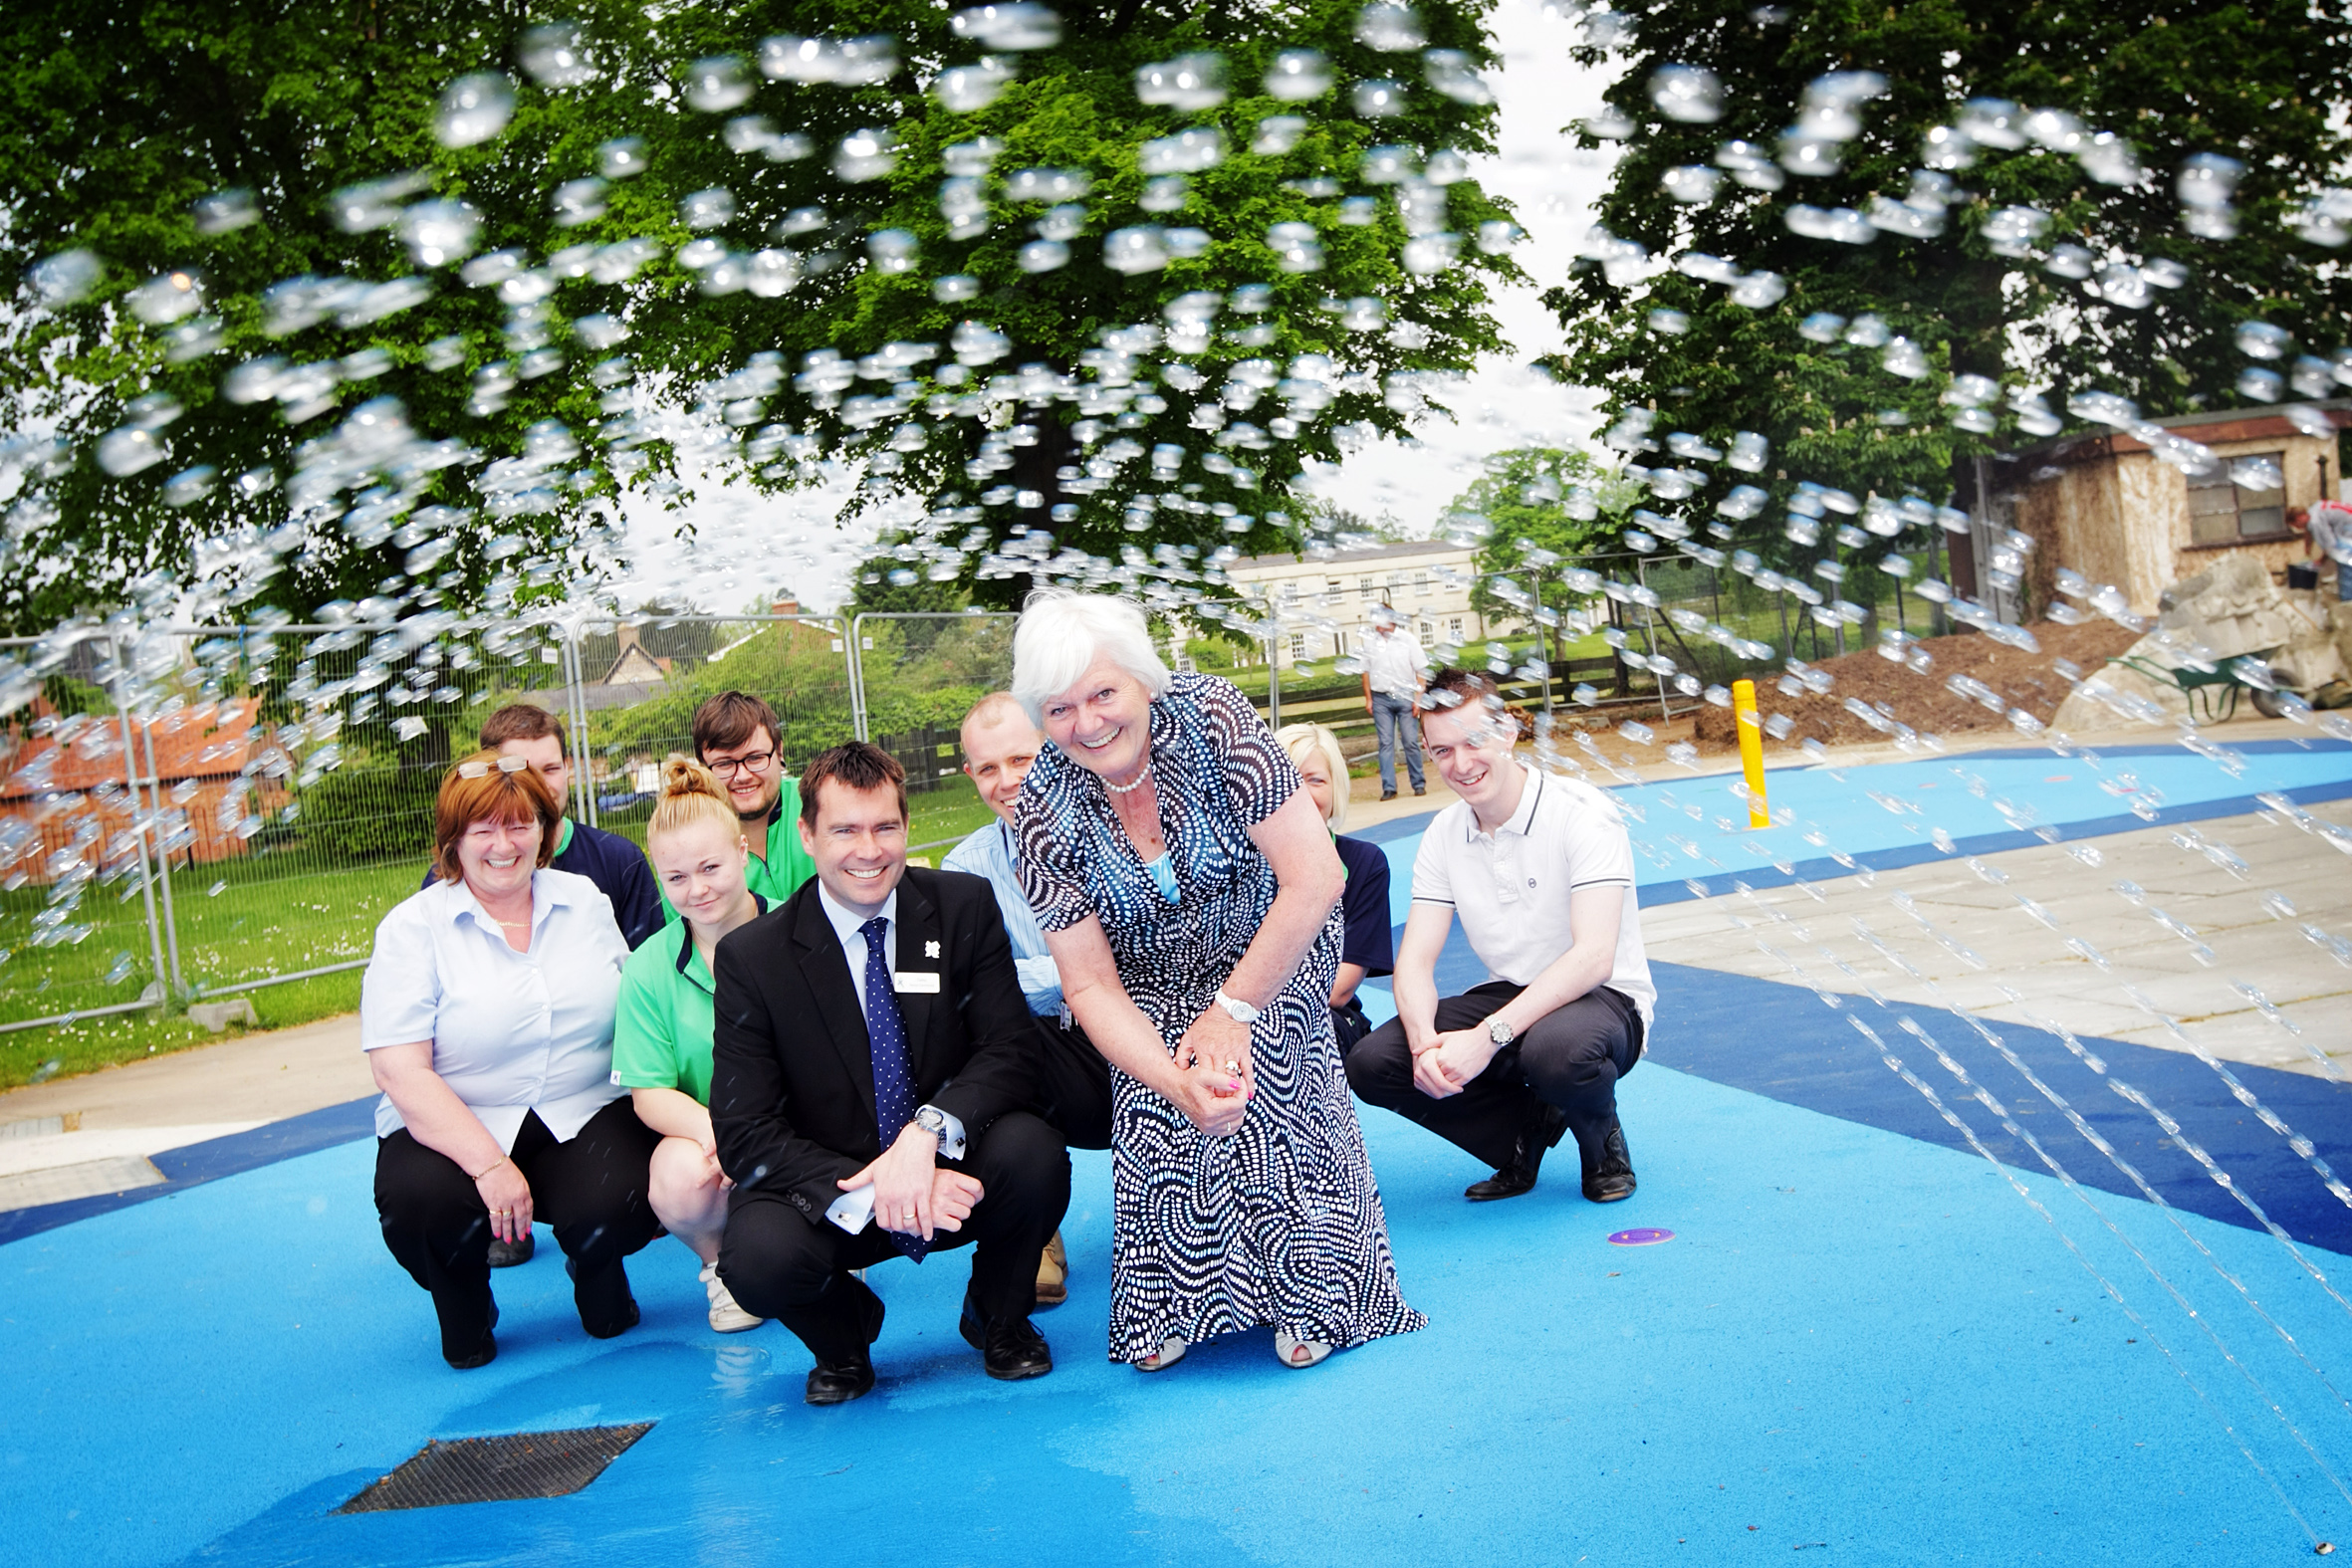 Staff at Jubilee Splash Park in 2012. Pic: Damian Halliwell